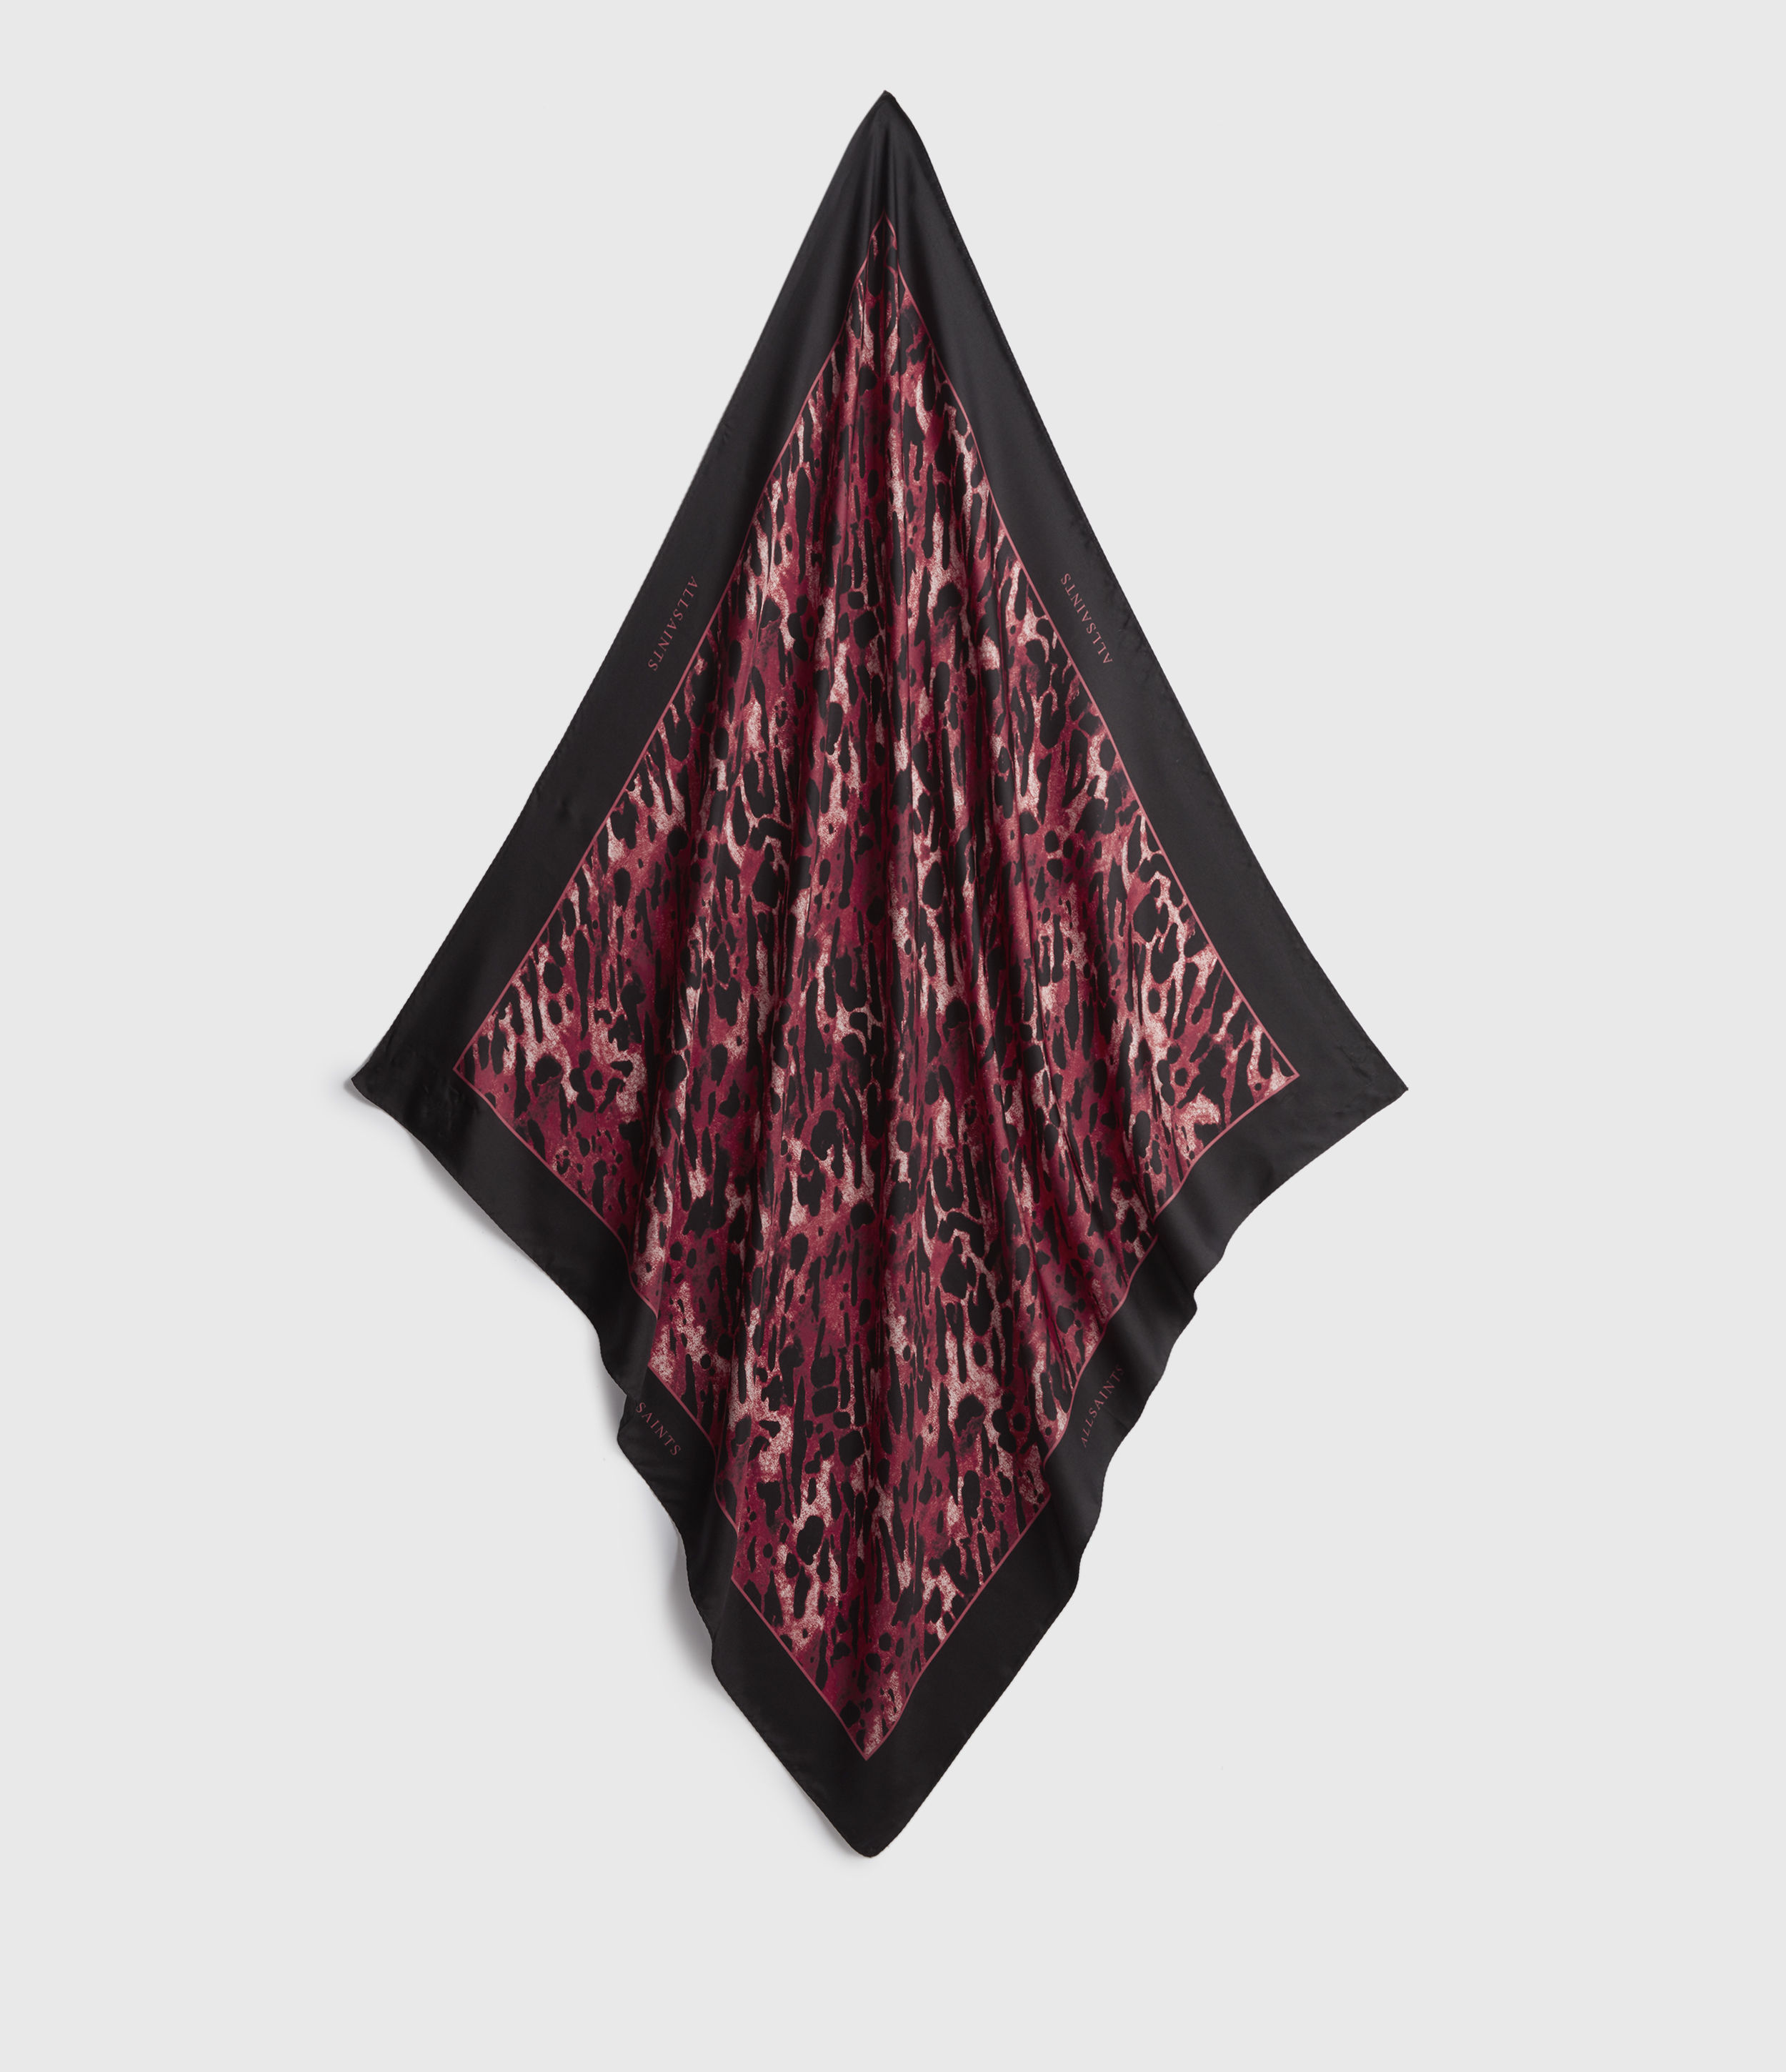 AllSaints Women's Silk Leopard Print Ambient Square Scarf, Red and Black